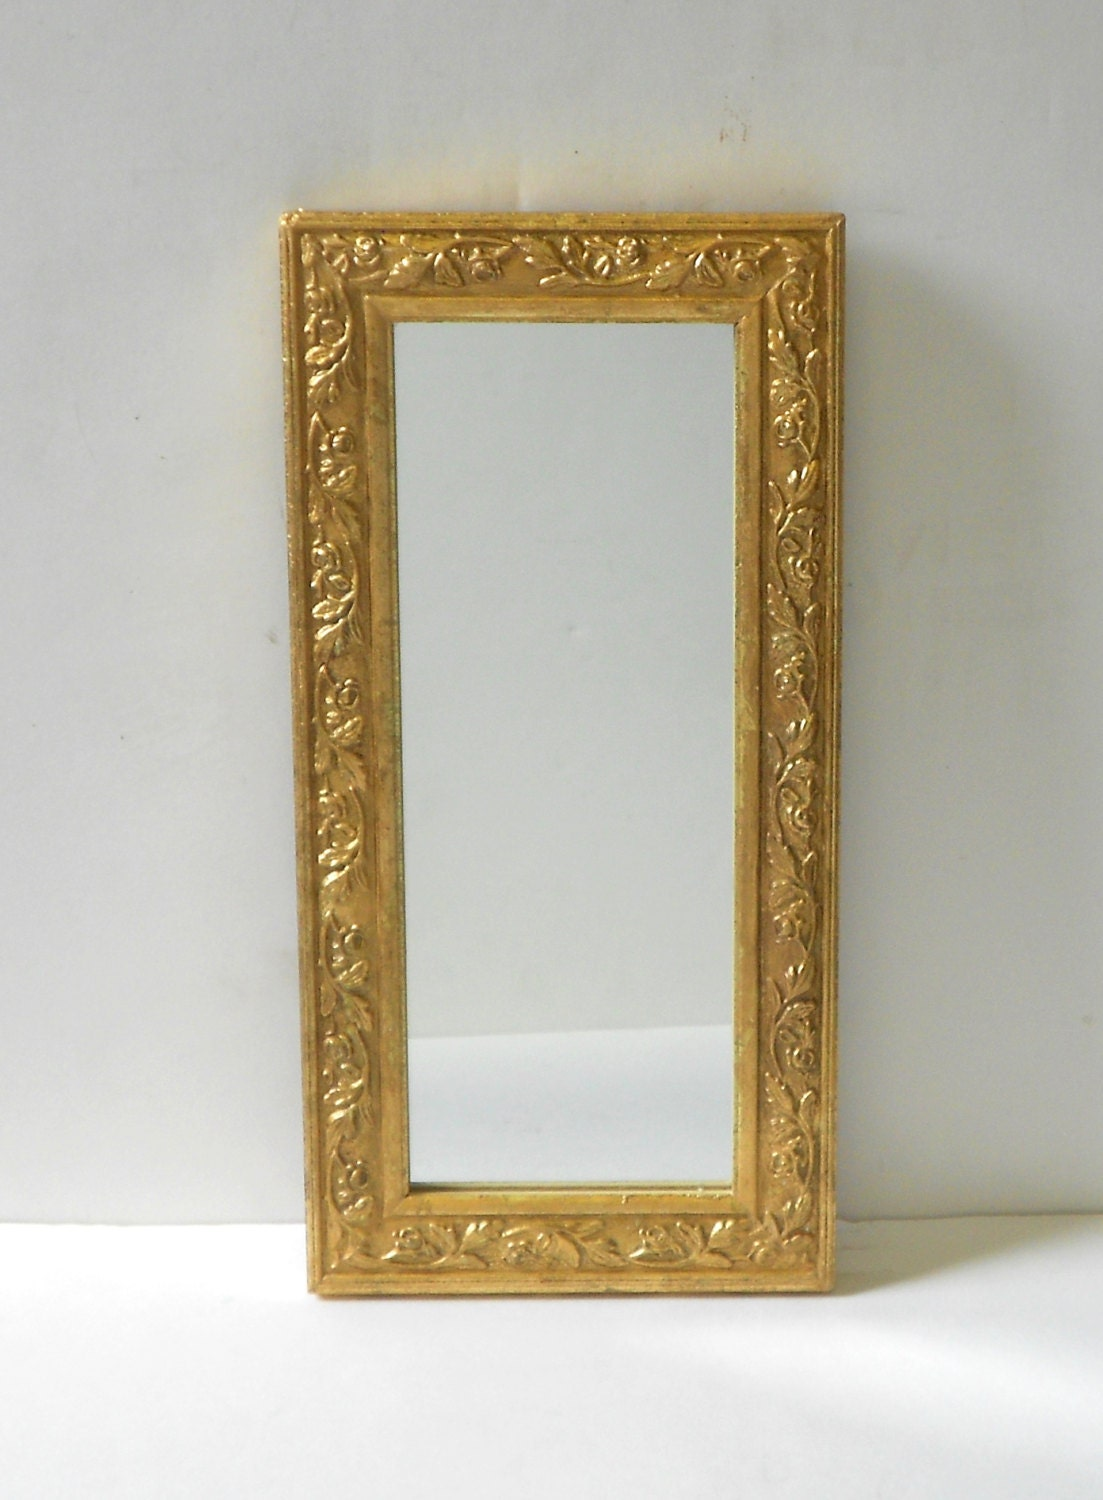 12x6 mirror wall mirror narrow mirror decorative mirror for Narrow wall mirror decorative